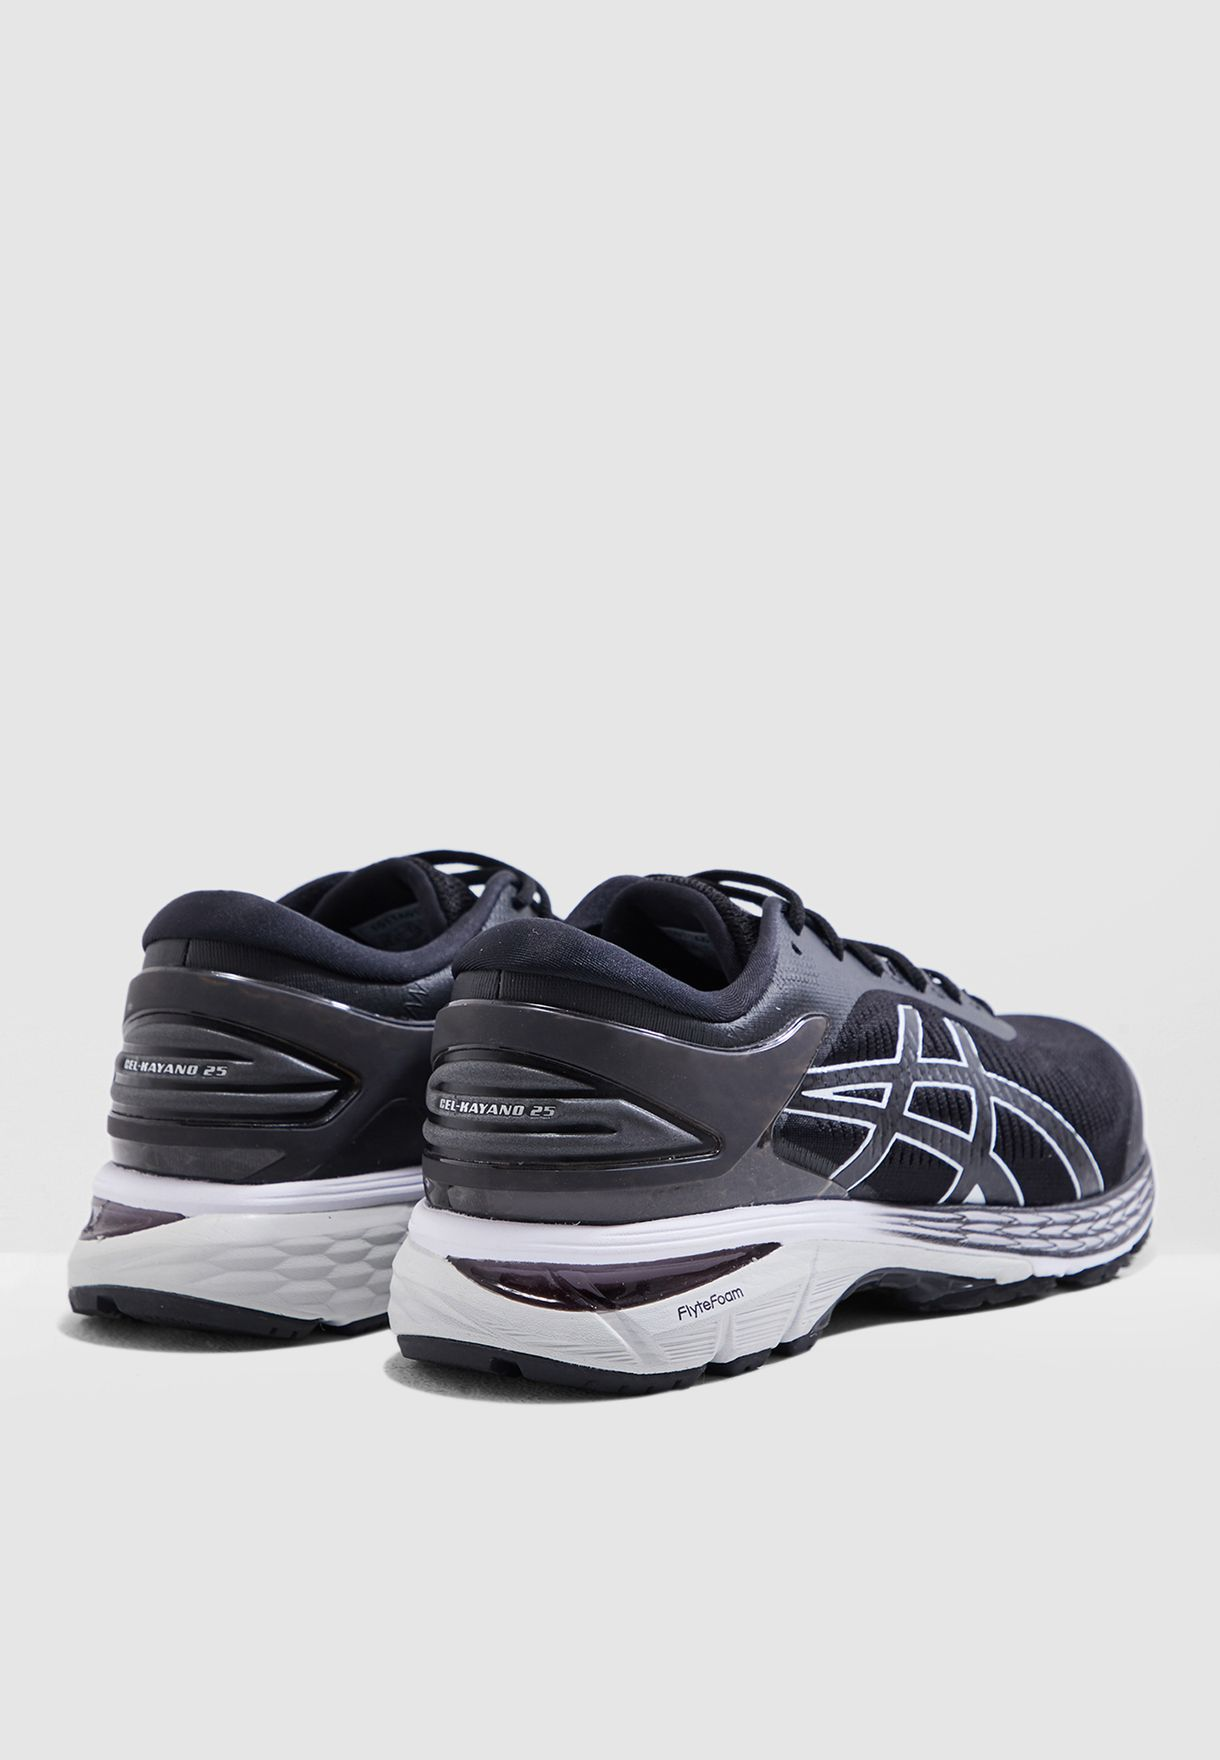 Shop Asics black GEL-Kayano 25 1011A019-003 for Men in Saudi ... 21aee2d97bf5